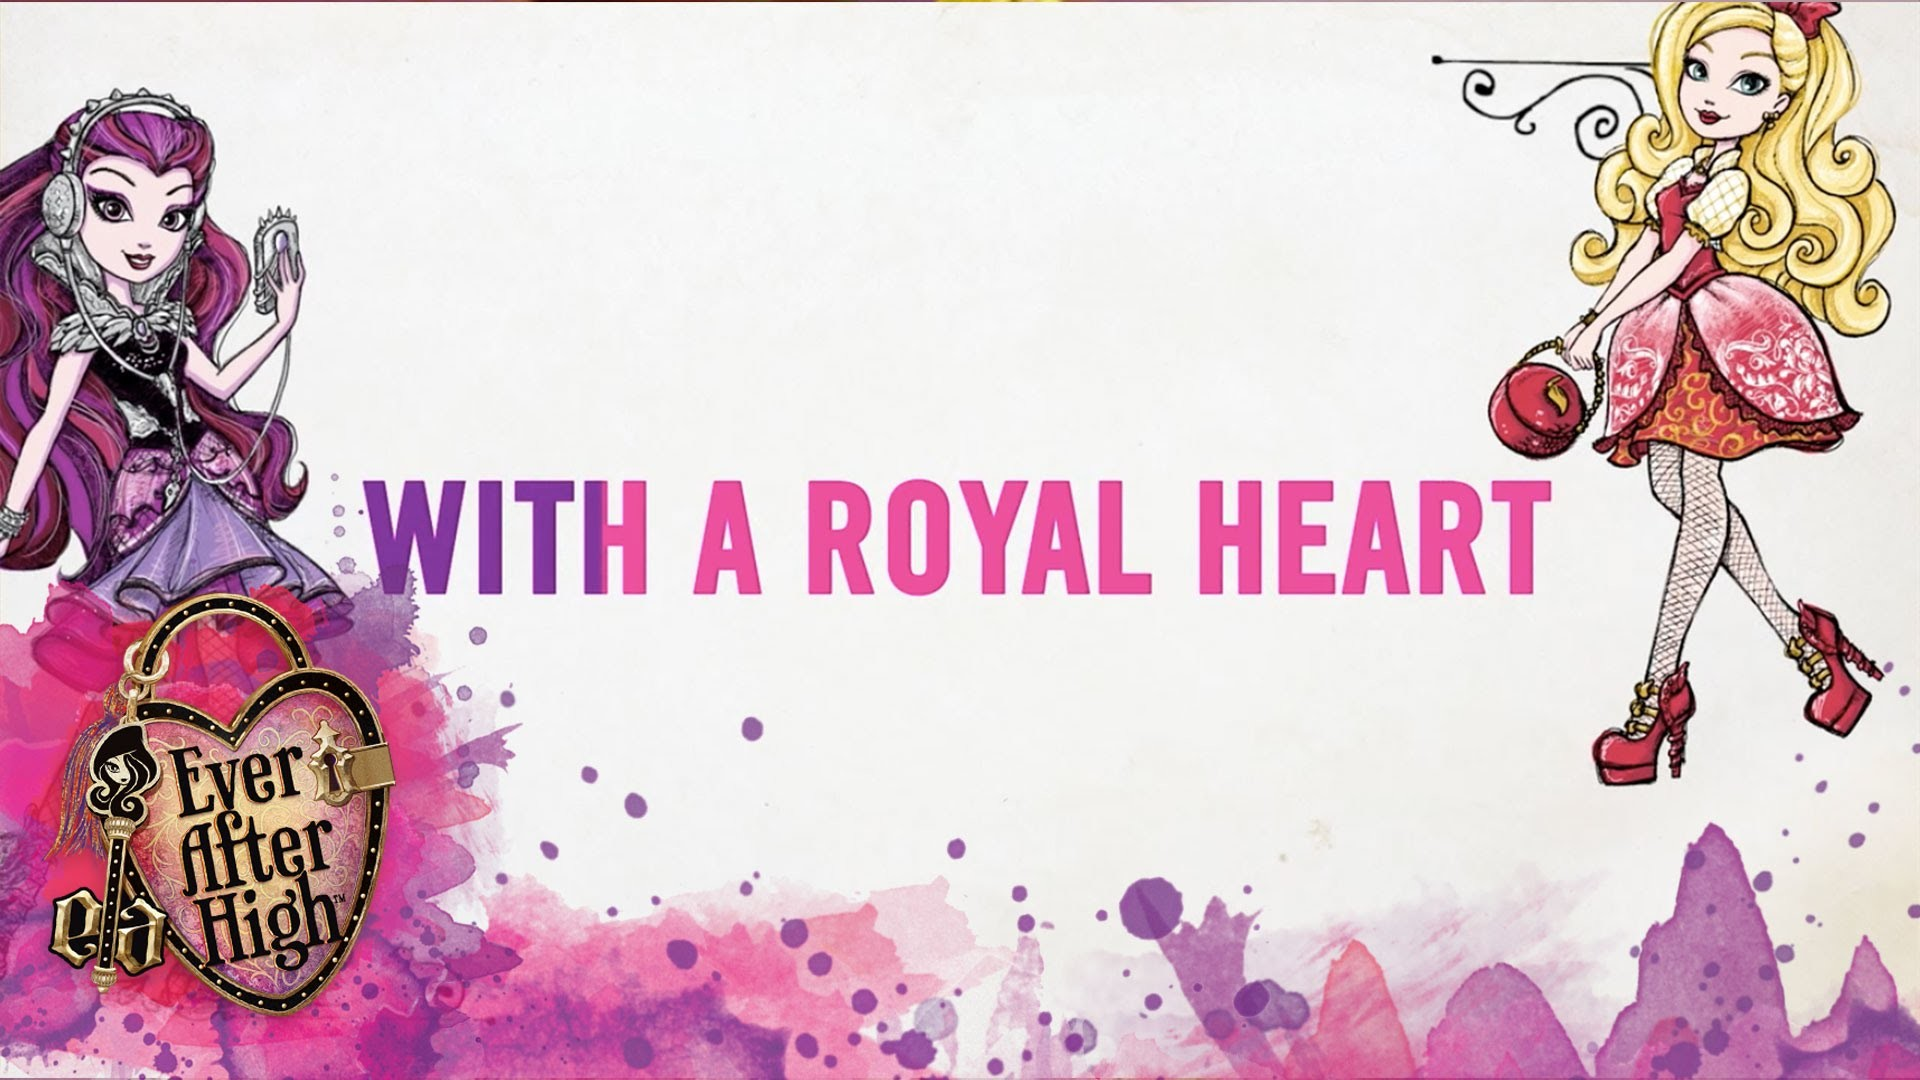 Ever After High Original Song (Official Lyric Video) | Ever After High –  YouTube